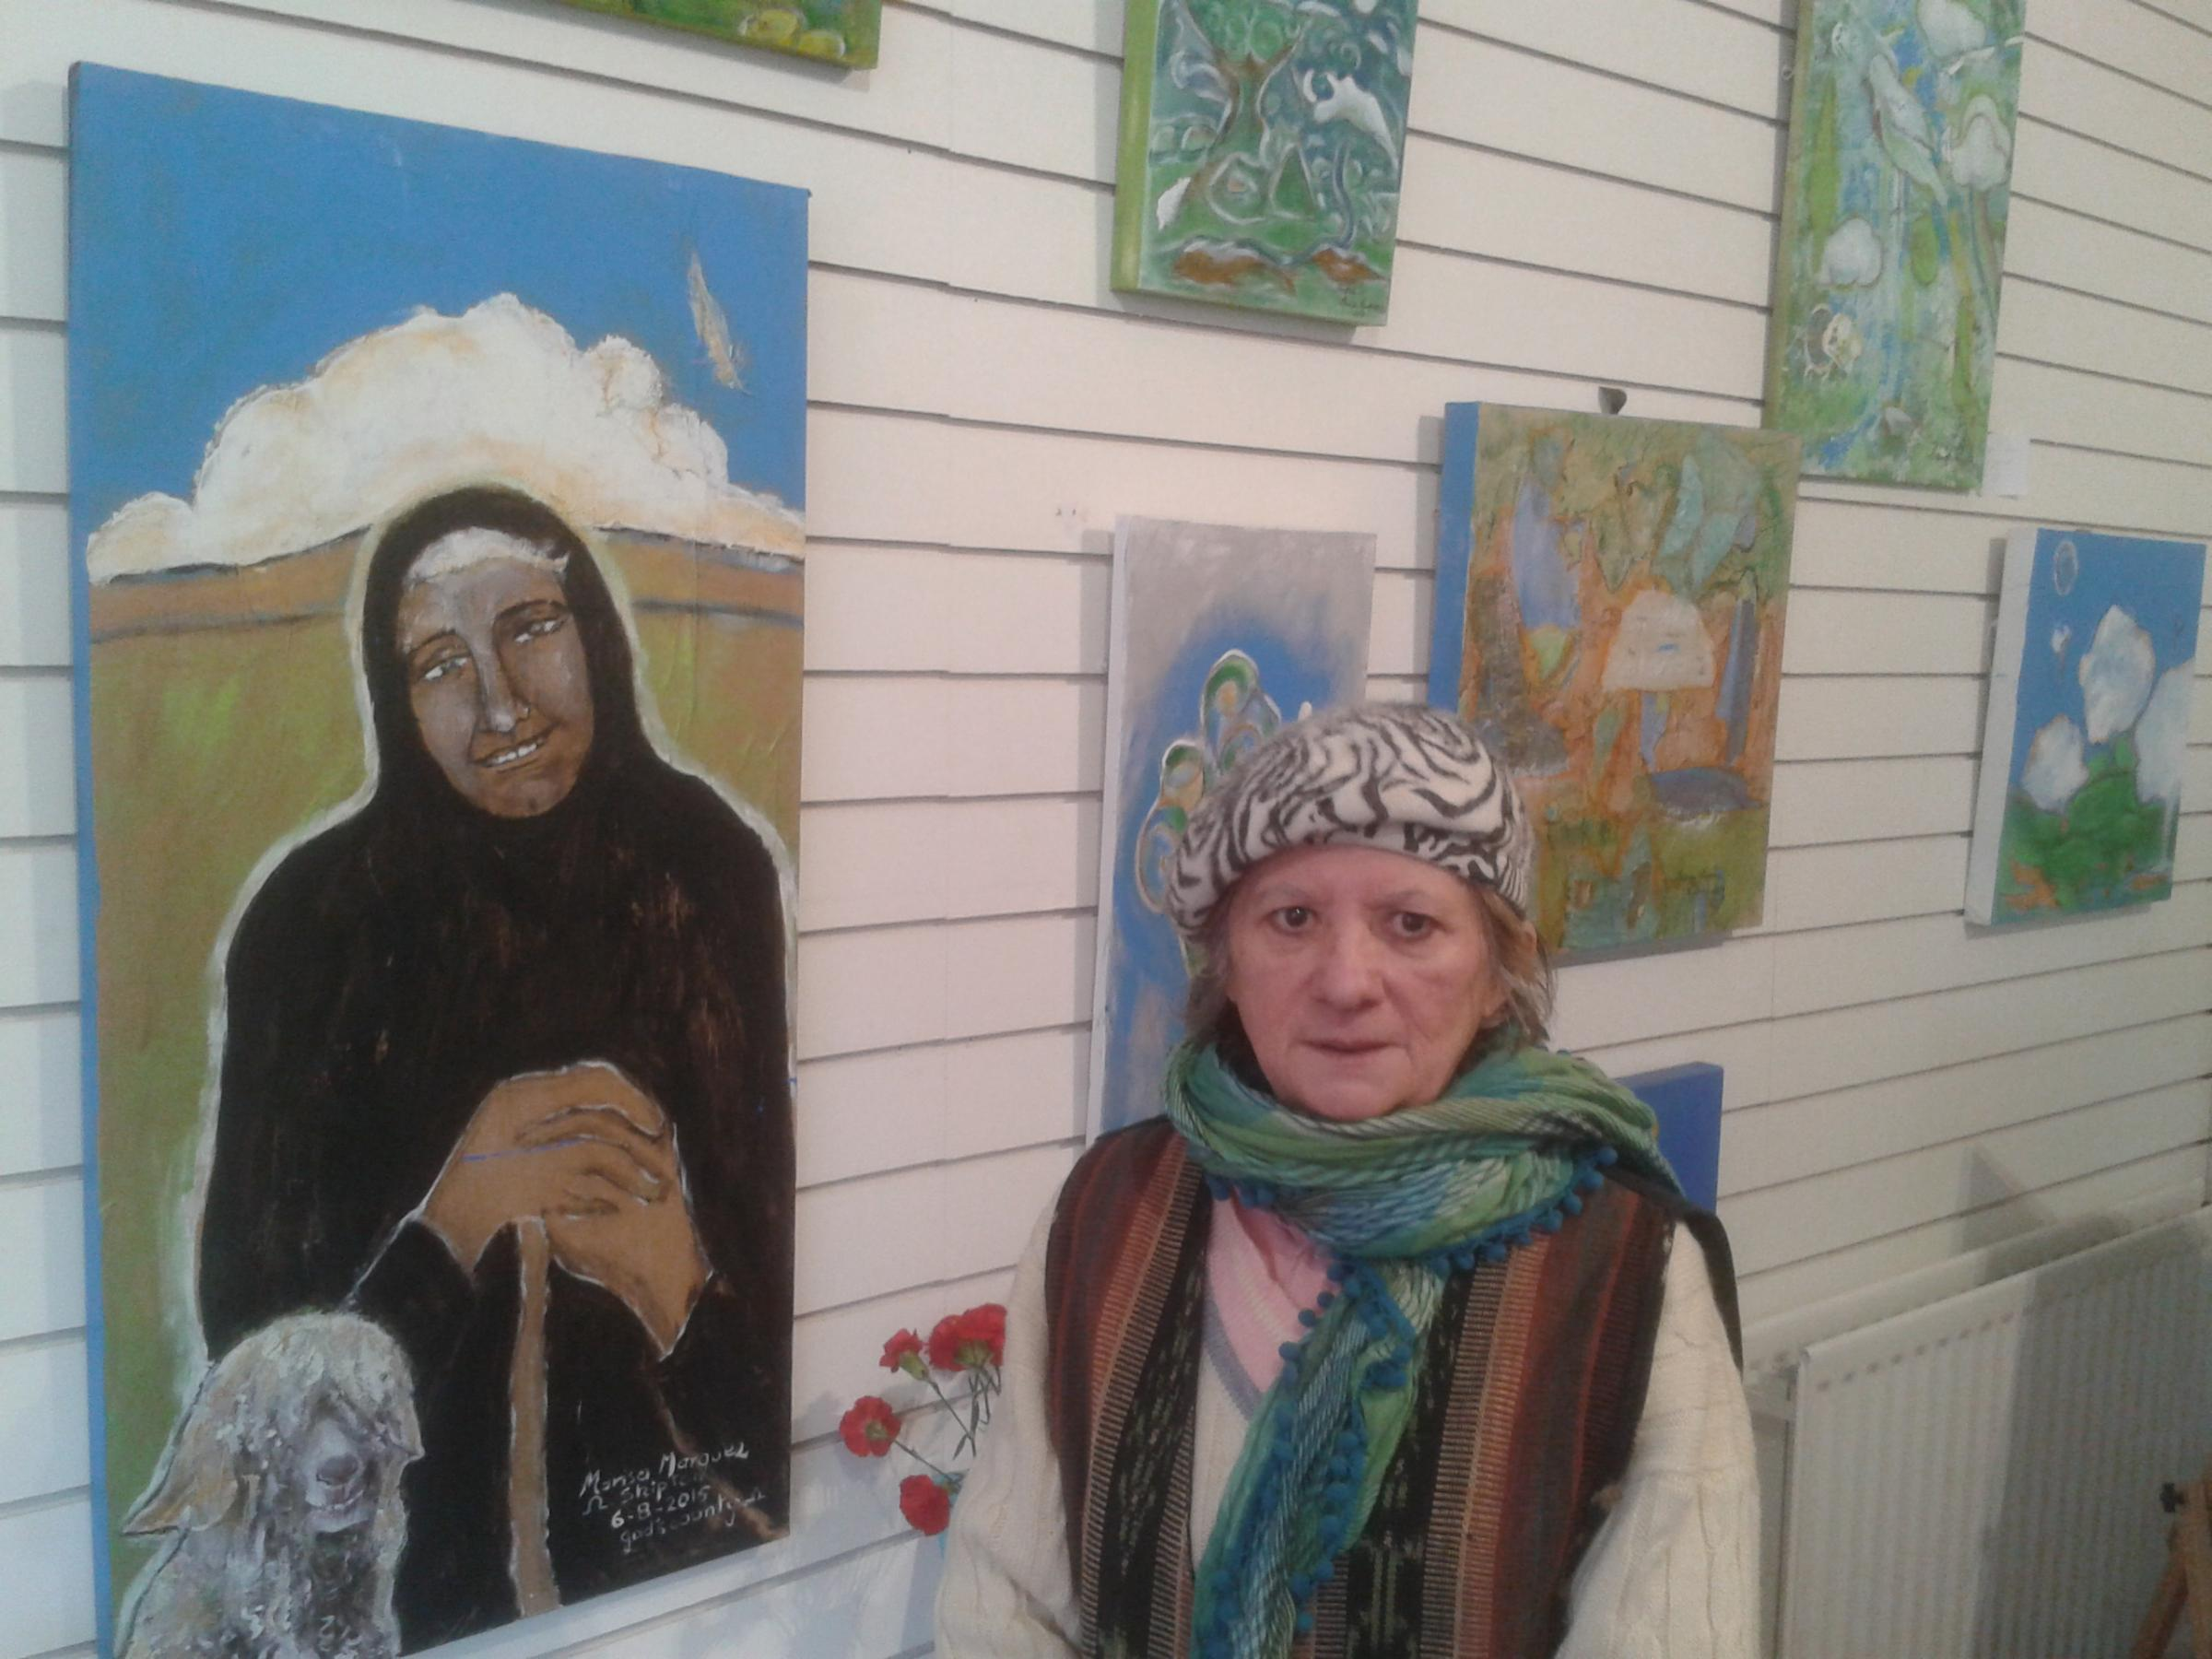 Artist Marisa Marquez with some of her paintings in the Sheepton exhibition.